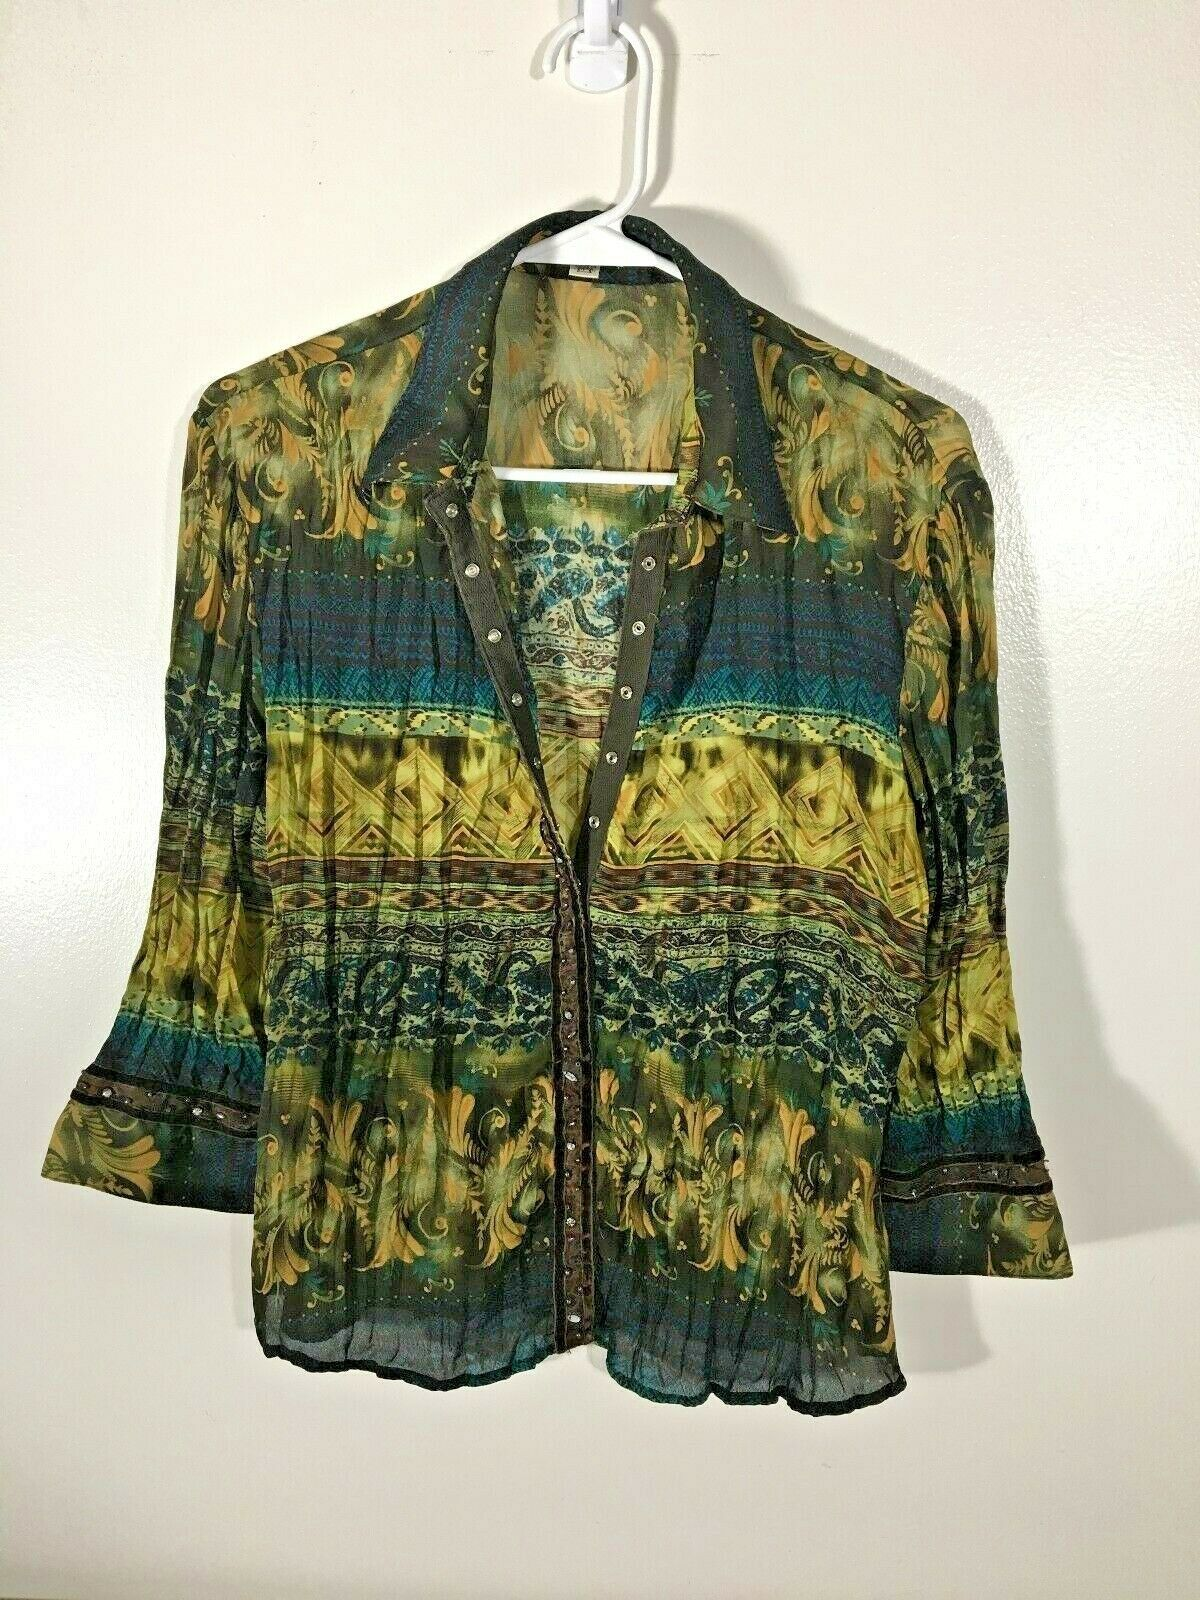 Women's Top Size S Gold Blue Blouse Bling Snaps Jaipur 3/4 Sleeve Pleated Small